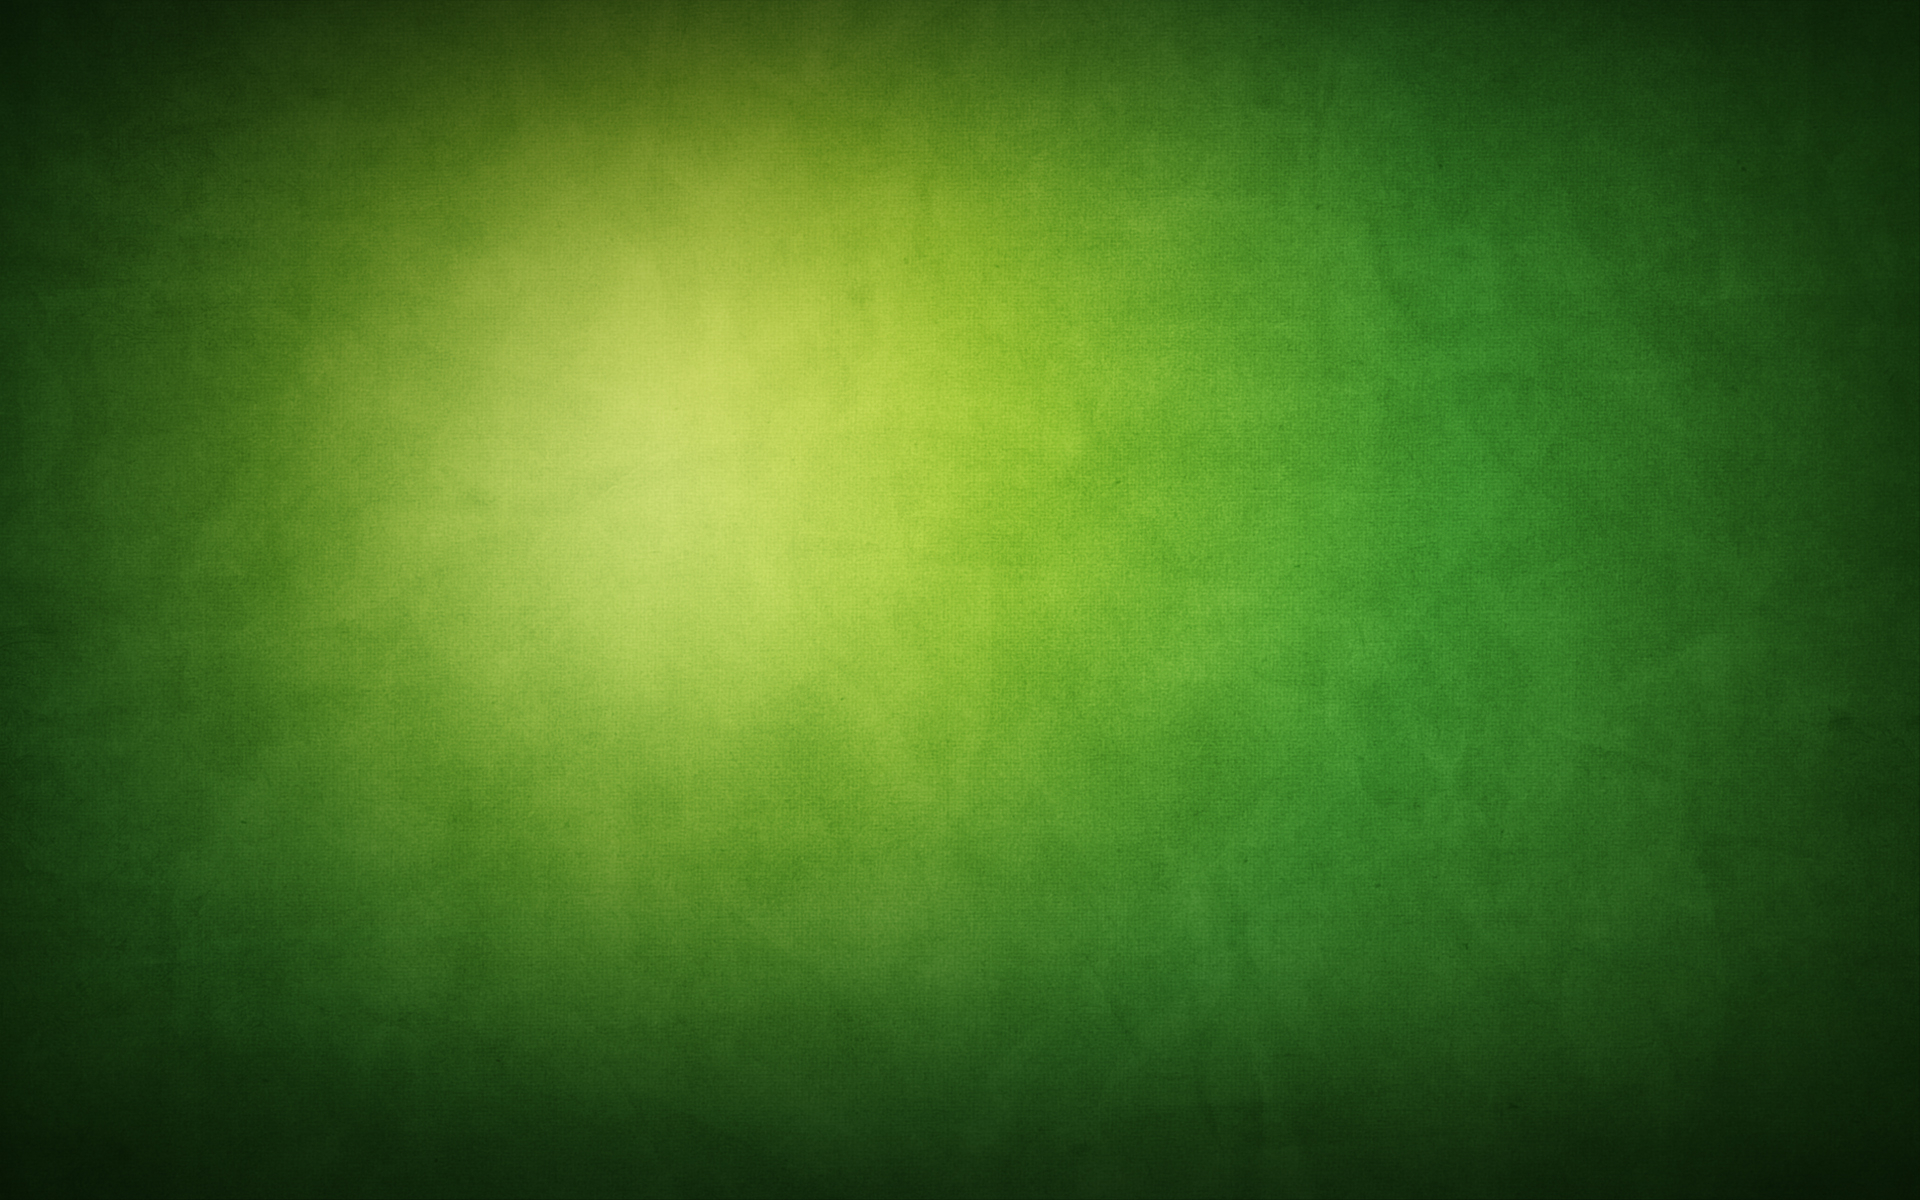 Green Full HD Wallpaper And Background Image